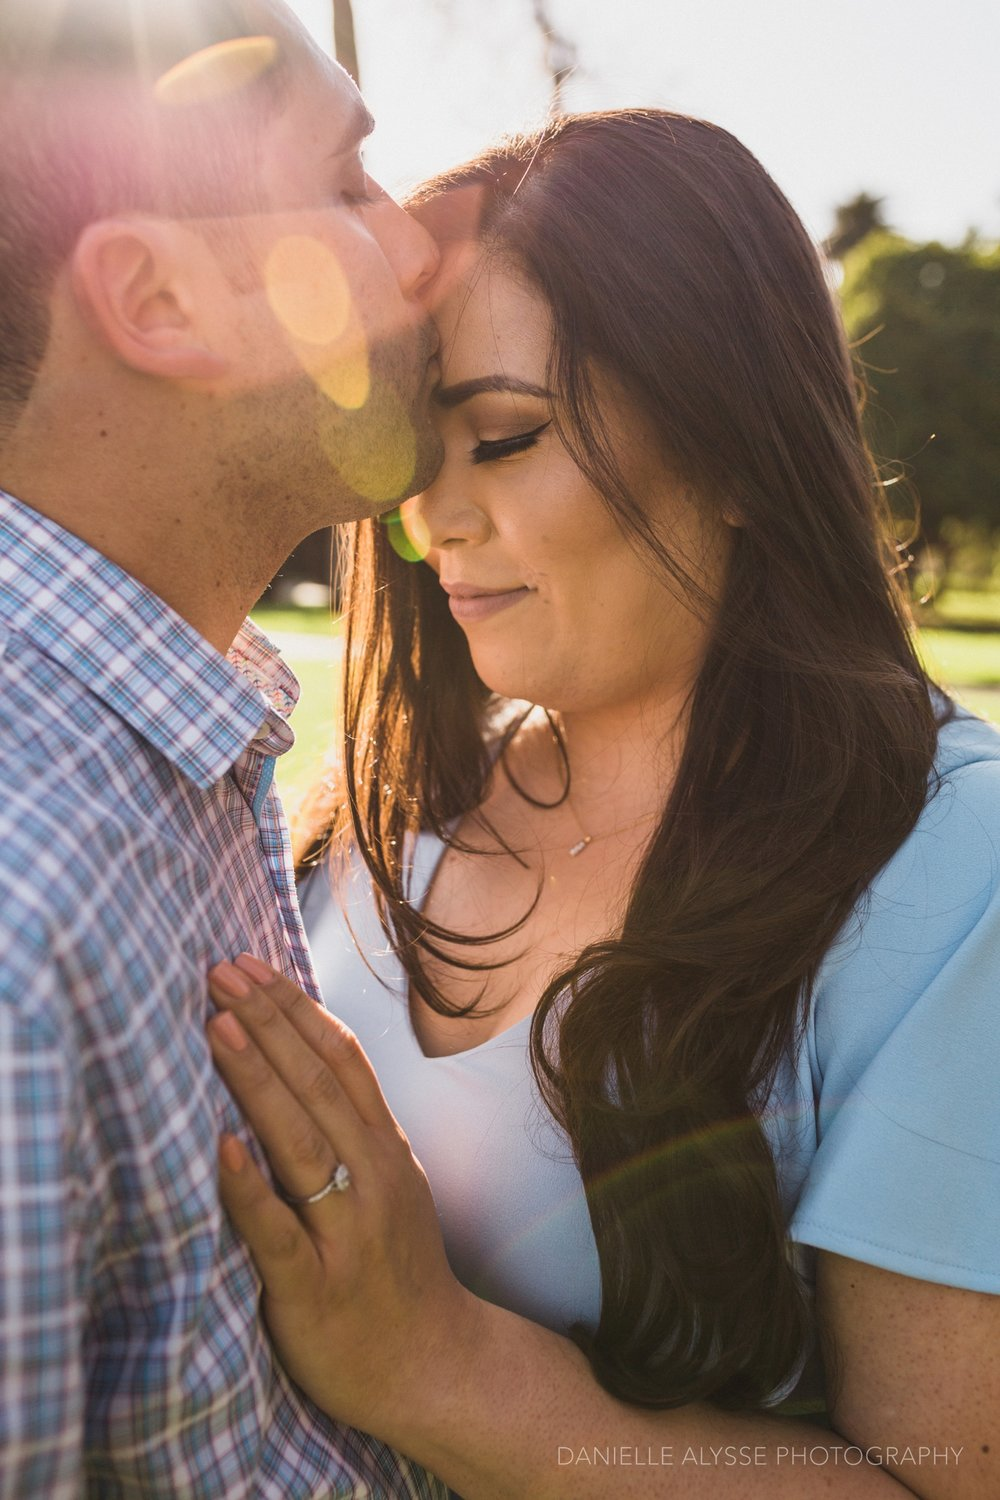 180324_engagement_lily_danielle_alysse_photography_downtown_sacramento_wedding_photographer_blog_15_WEB.jpg